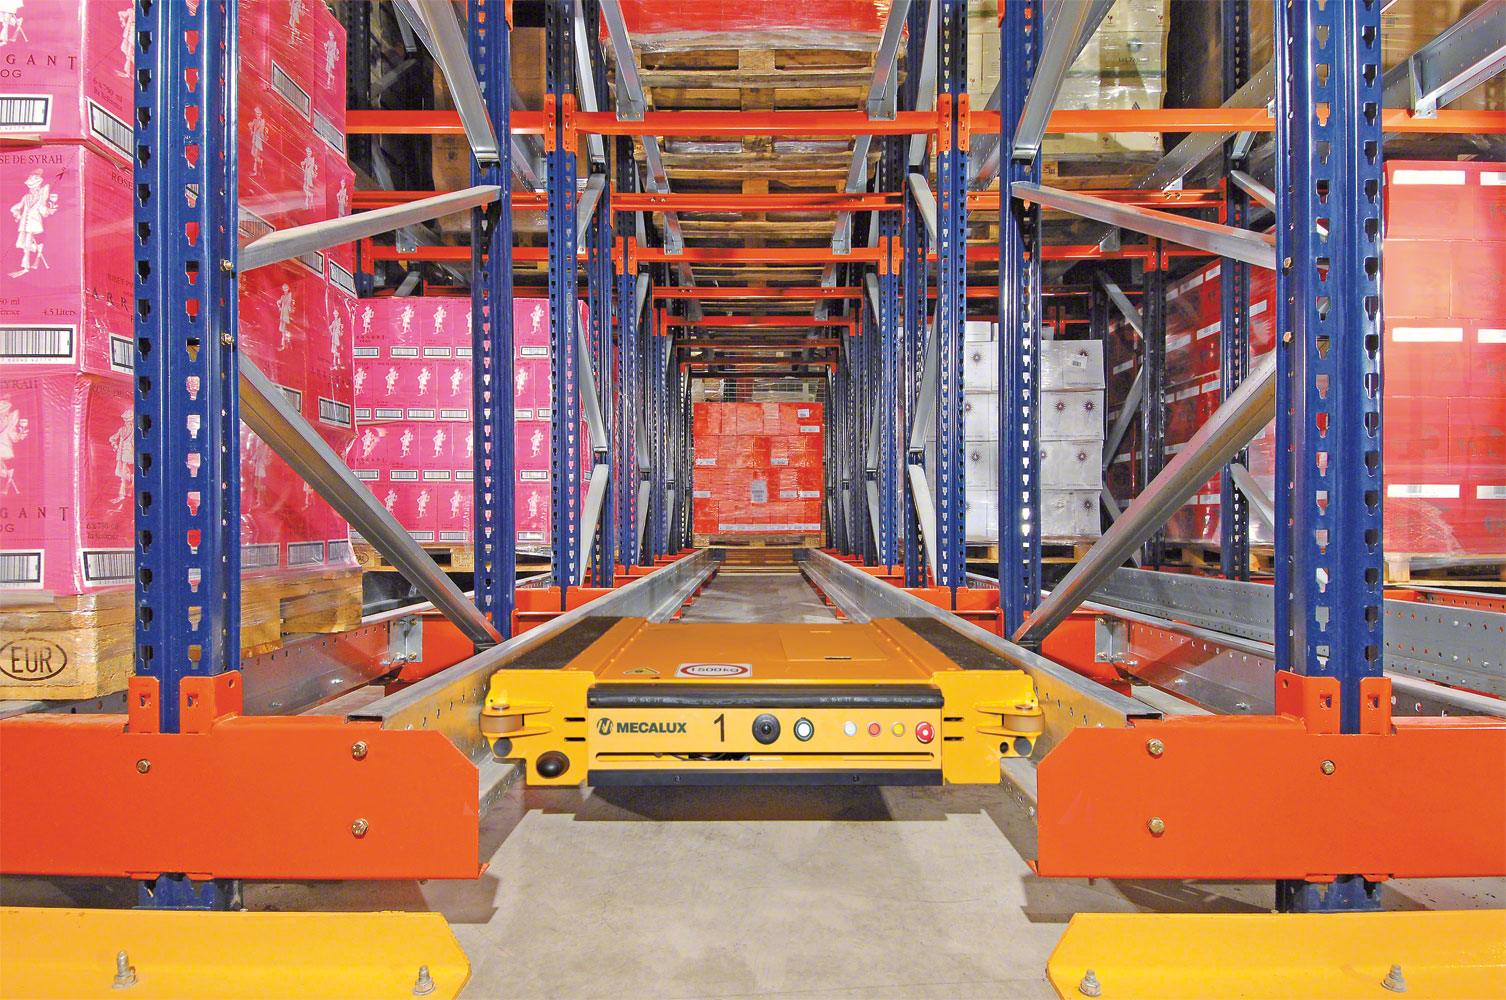 Pallet Shuttle in motion, to perform a retrieval operation